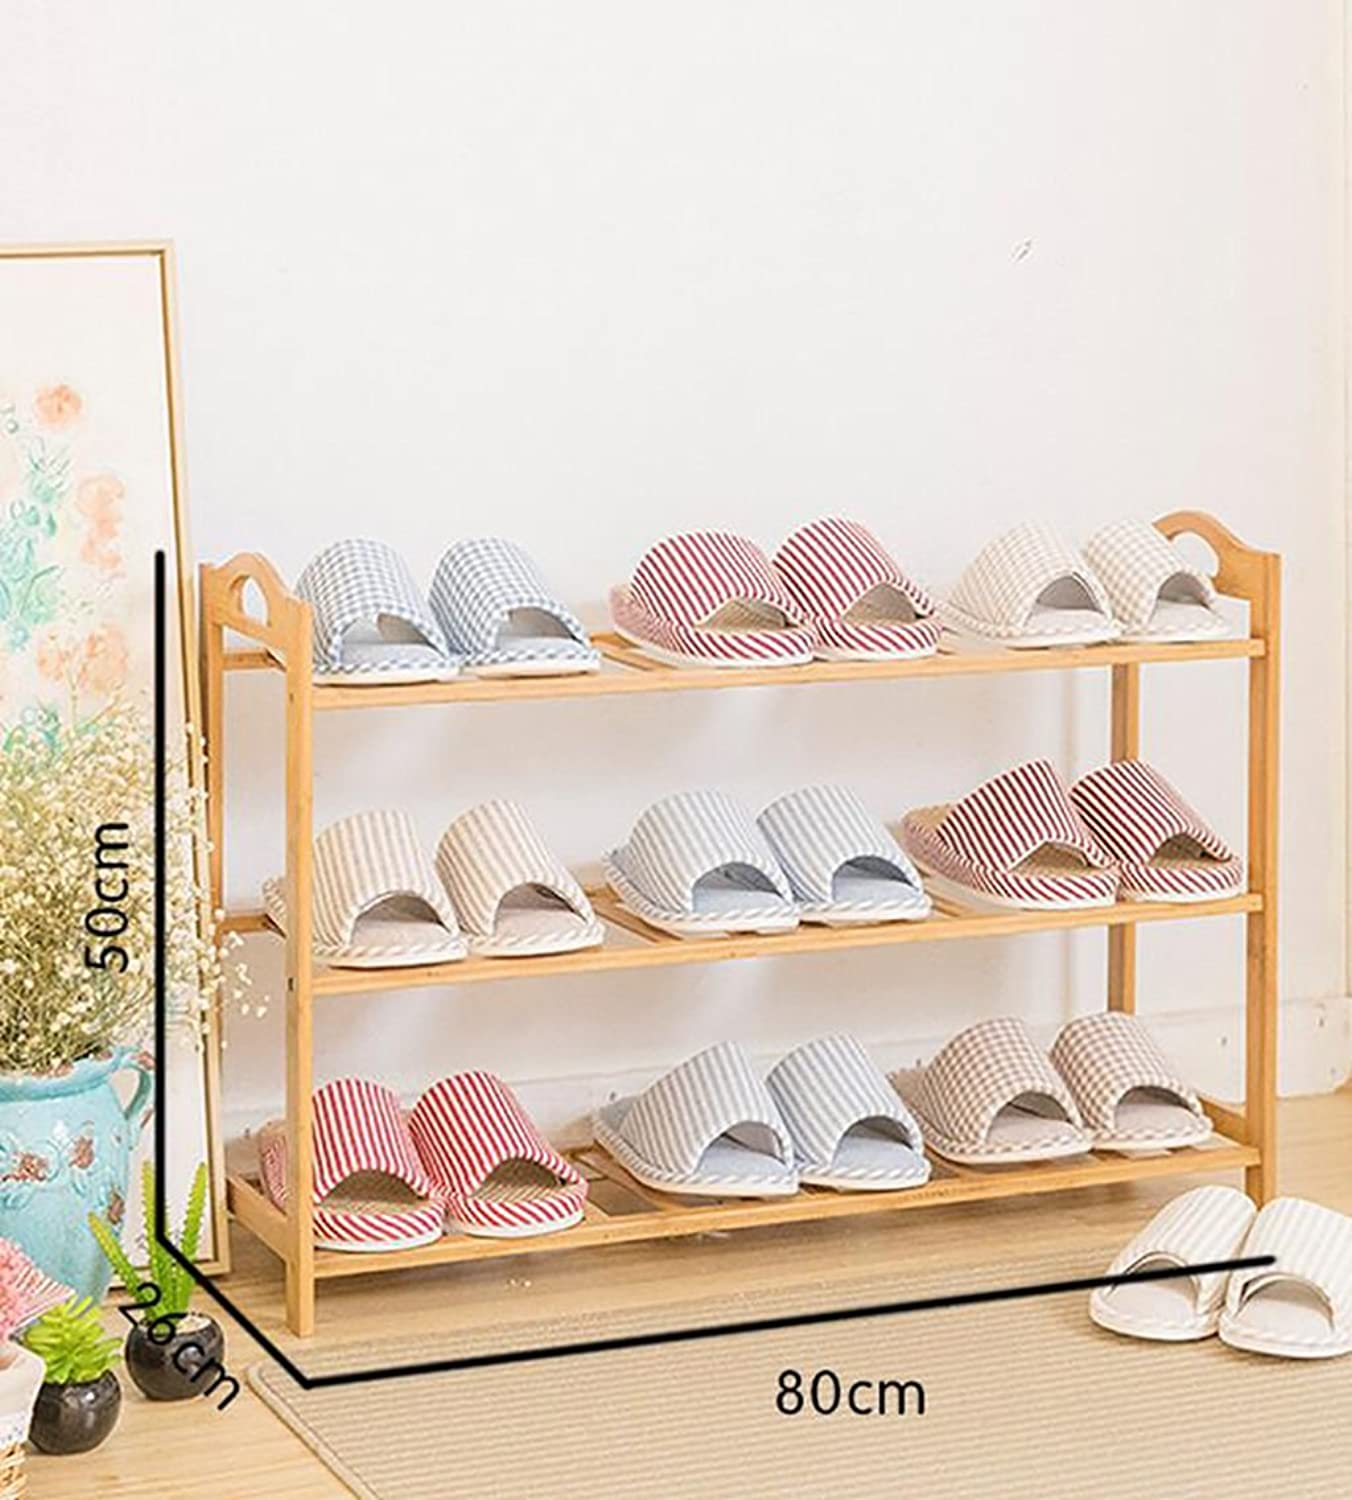 shoes Bench Organizing Rack shoes Rack Bamboo Shelves Multi - Layer dust - Proof Solid Wood shoes Rack Assembly Economical Shelves Home Living Room shoes Cabinet (color   A, Size   80cm)